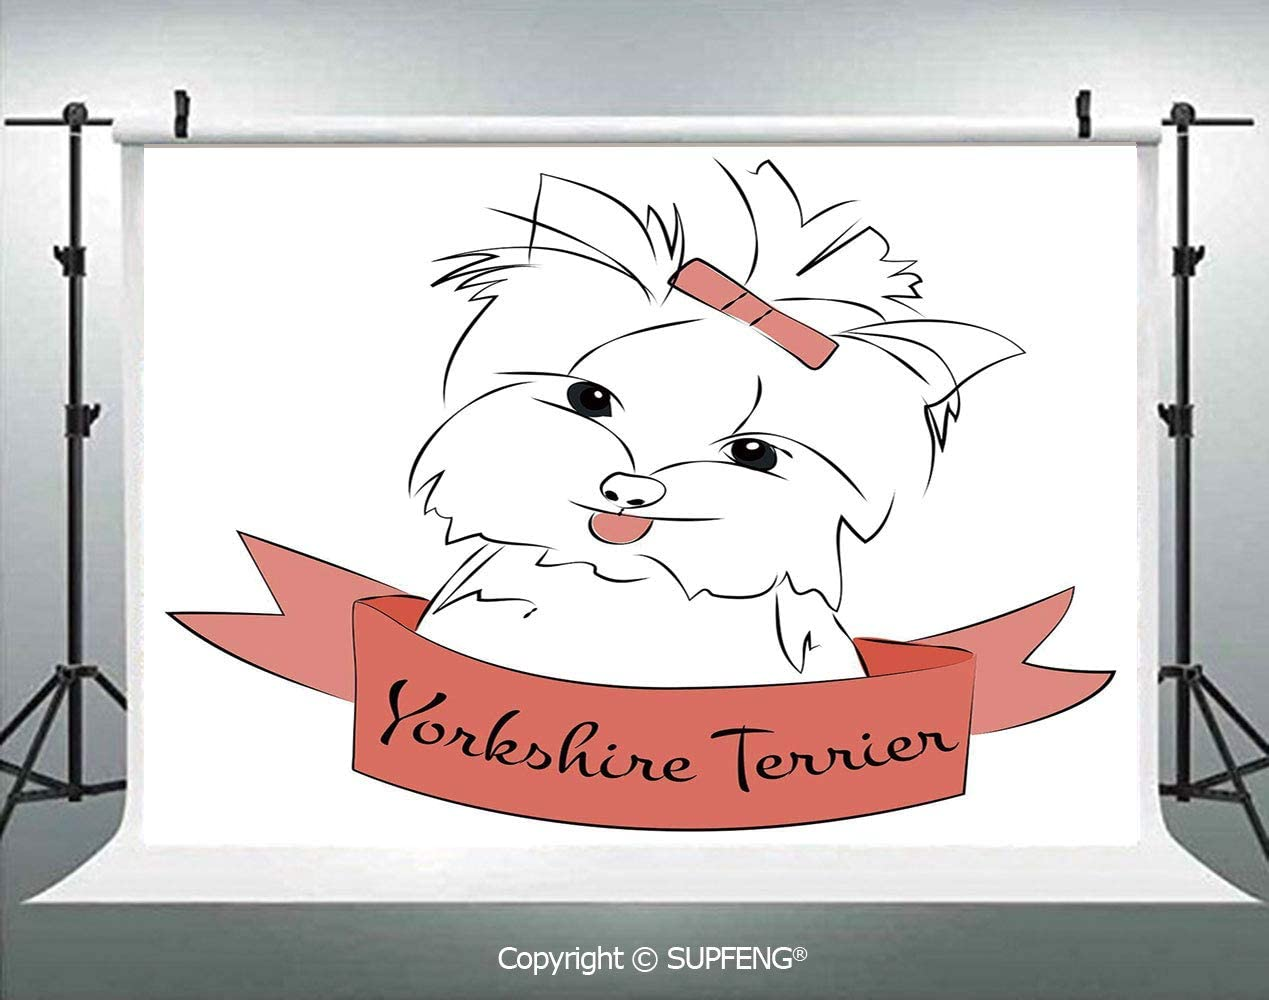 7x10 FT Vinyl Photography Backdrop,Cute Puppy with Hair Buckle Yorkie Terrier Animal Ribbon Cartoon Character Print Background for Child Baby Shower Photo Studio Prop Photobooth Photoshoot